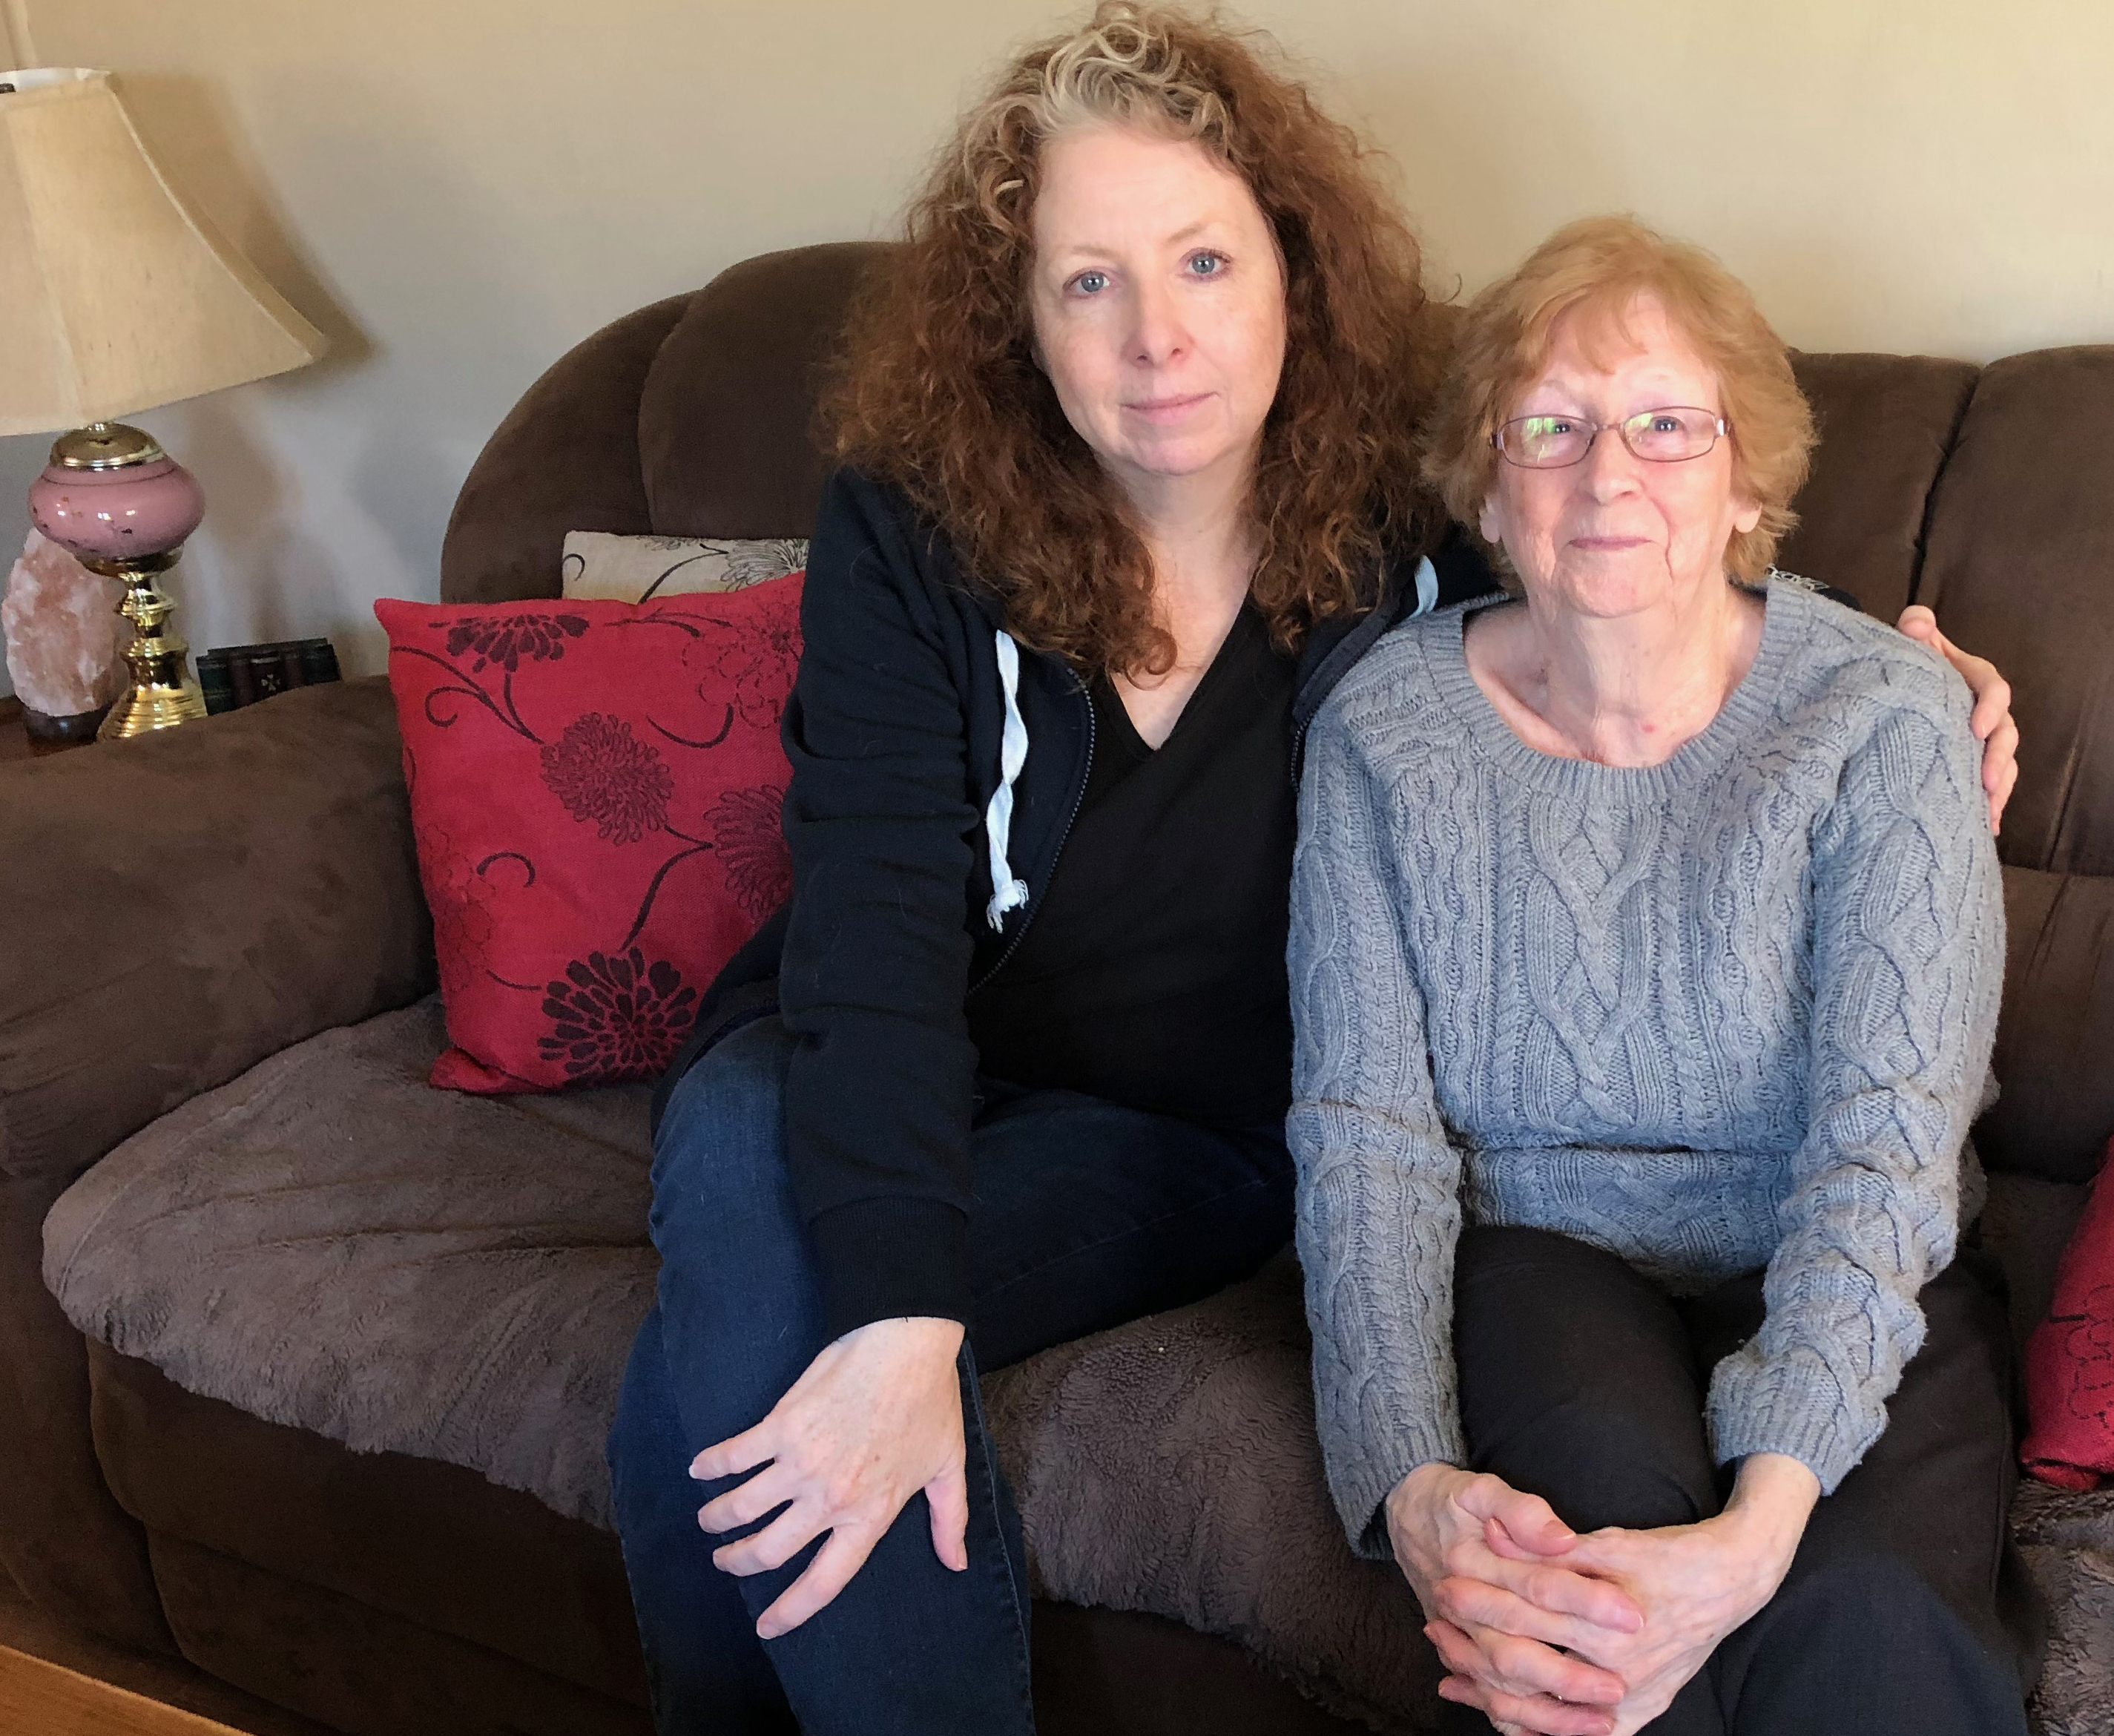 Pam Detlor and her mom Jeannette Detlor were able to move their trailer to land outside Summerside, but say many others couldn't afford to do that, and sold their trailers for very little. (Laura Meader/CBC)